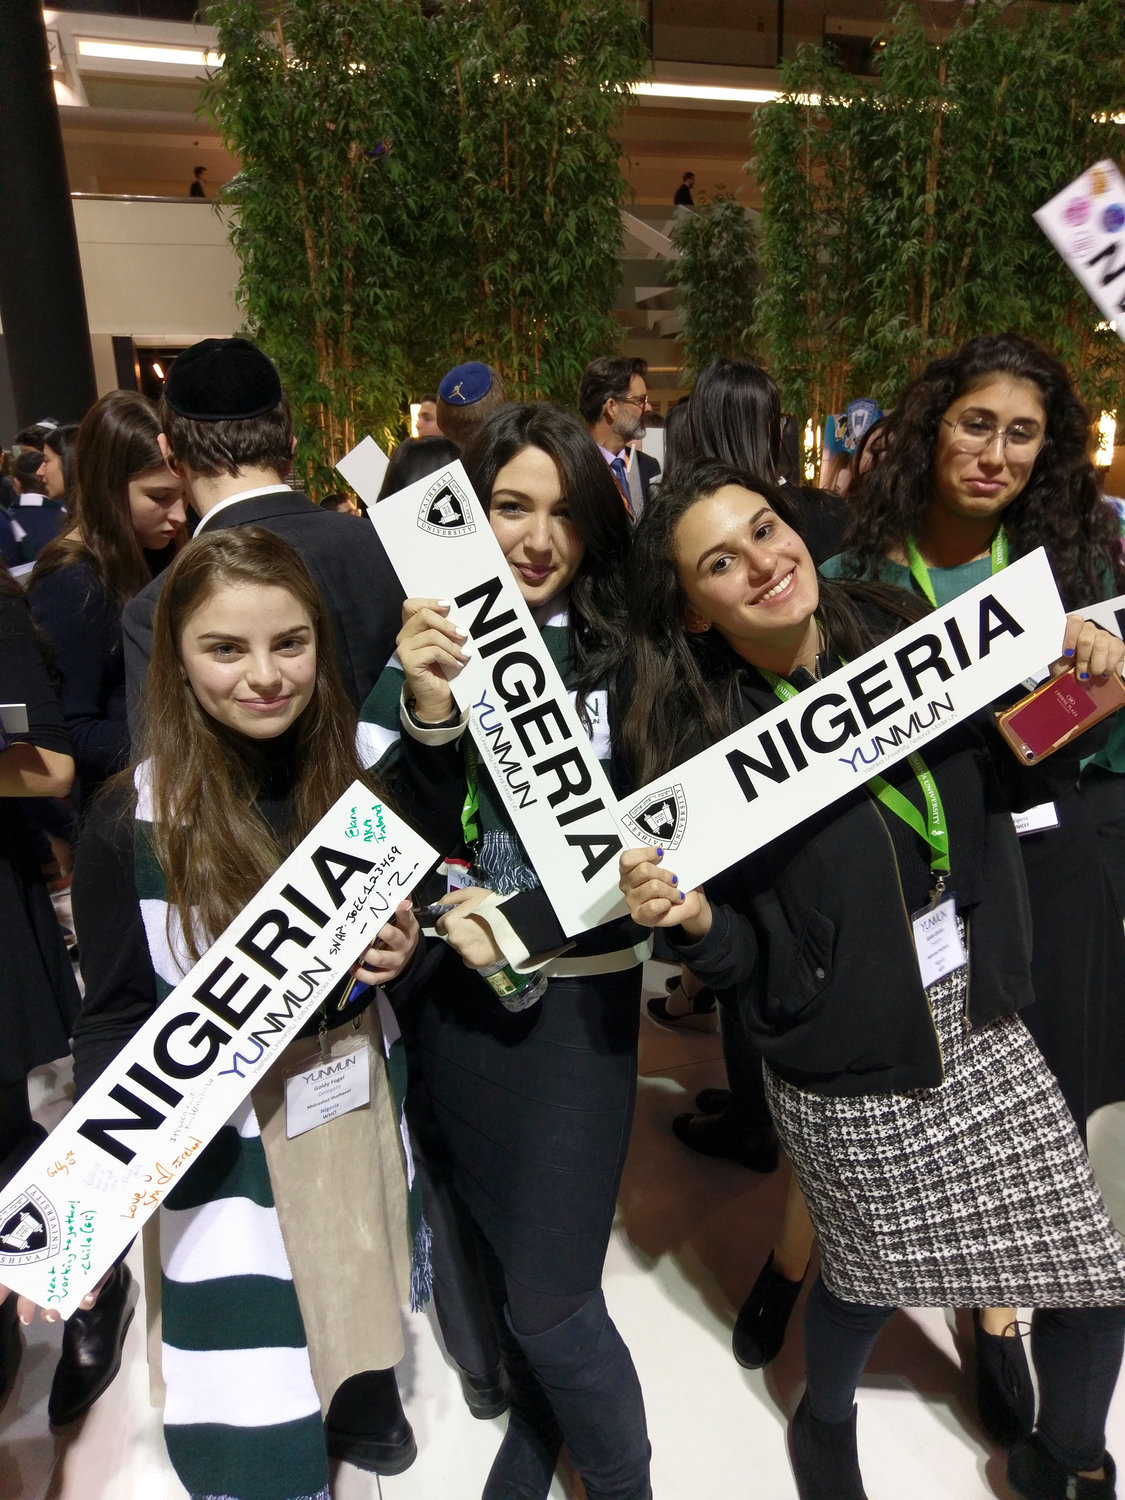 Midreshet Shalhevet High School students Goldy Fogel,  Dassi Klein, Golda Gordon and Lital Davidov took part in the Yeshiva University National Model United Nations.